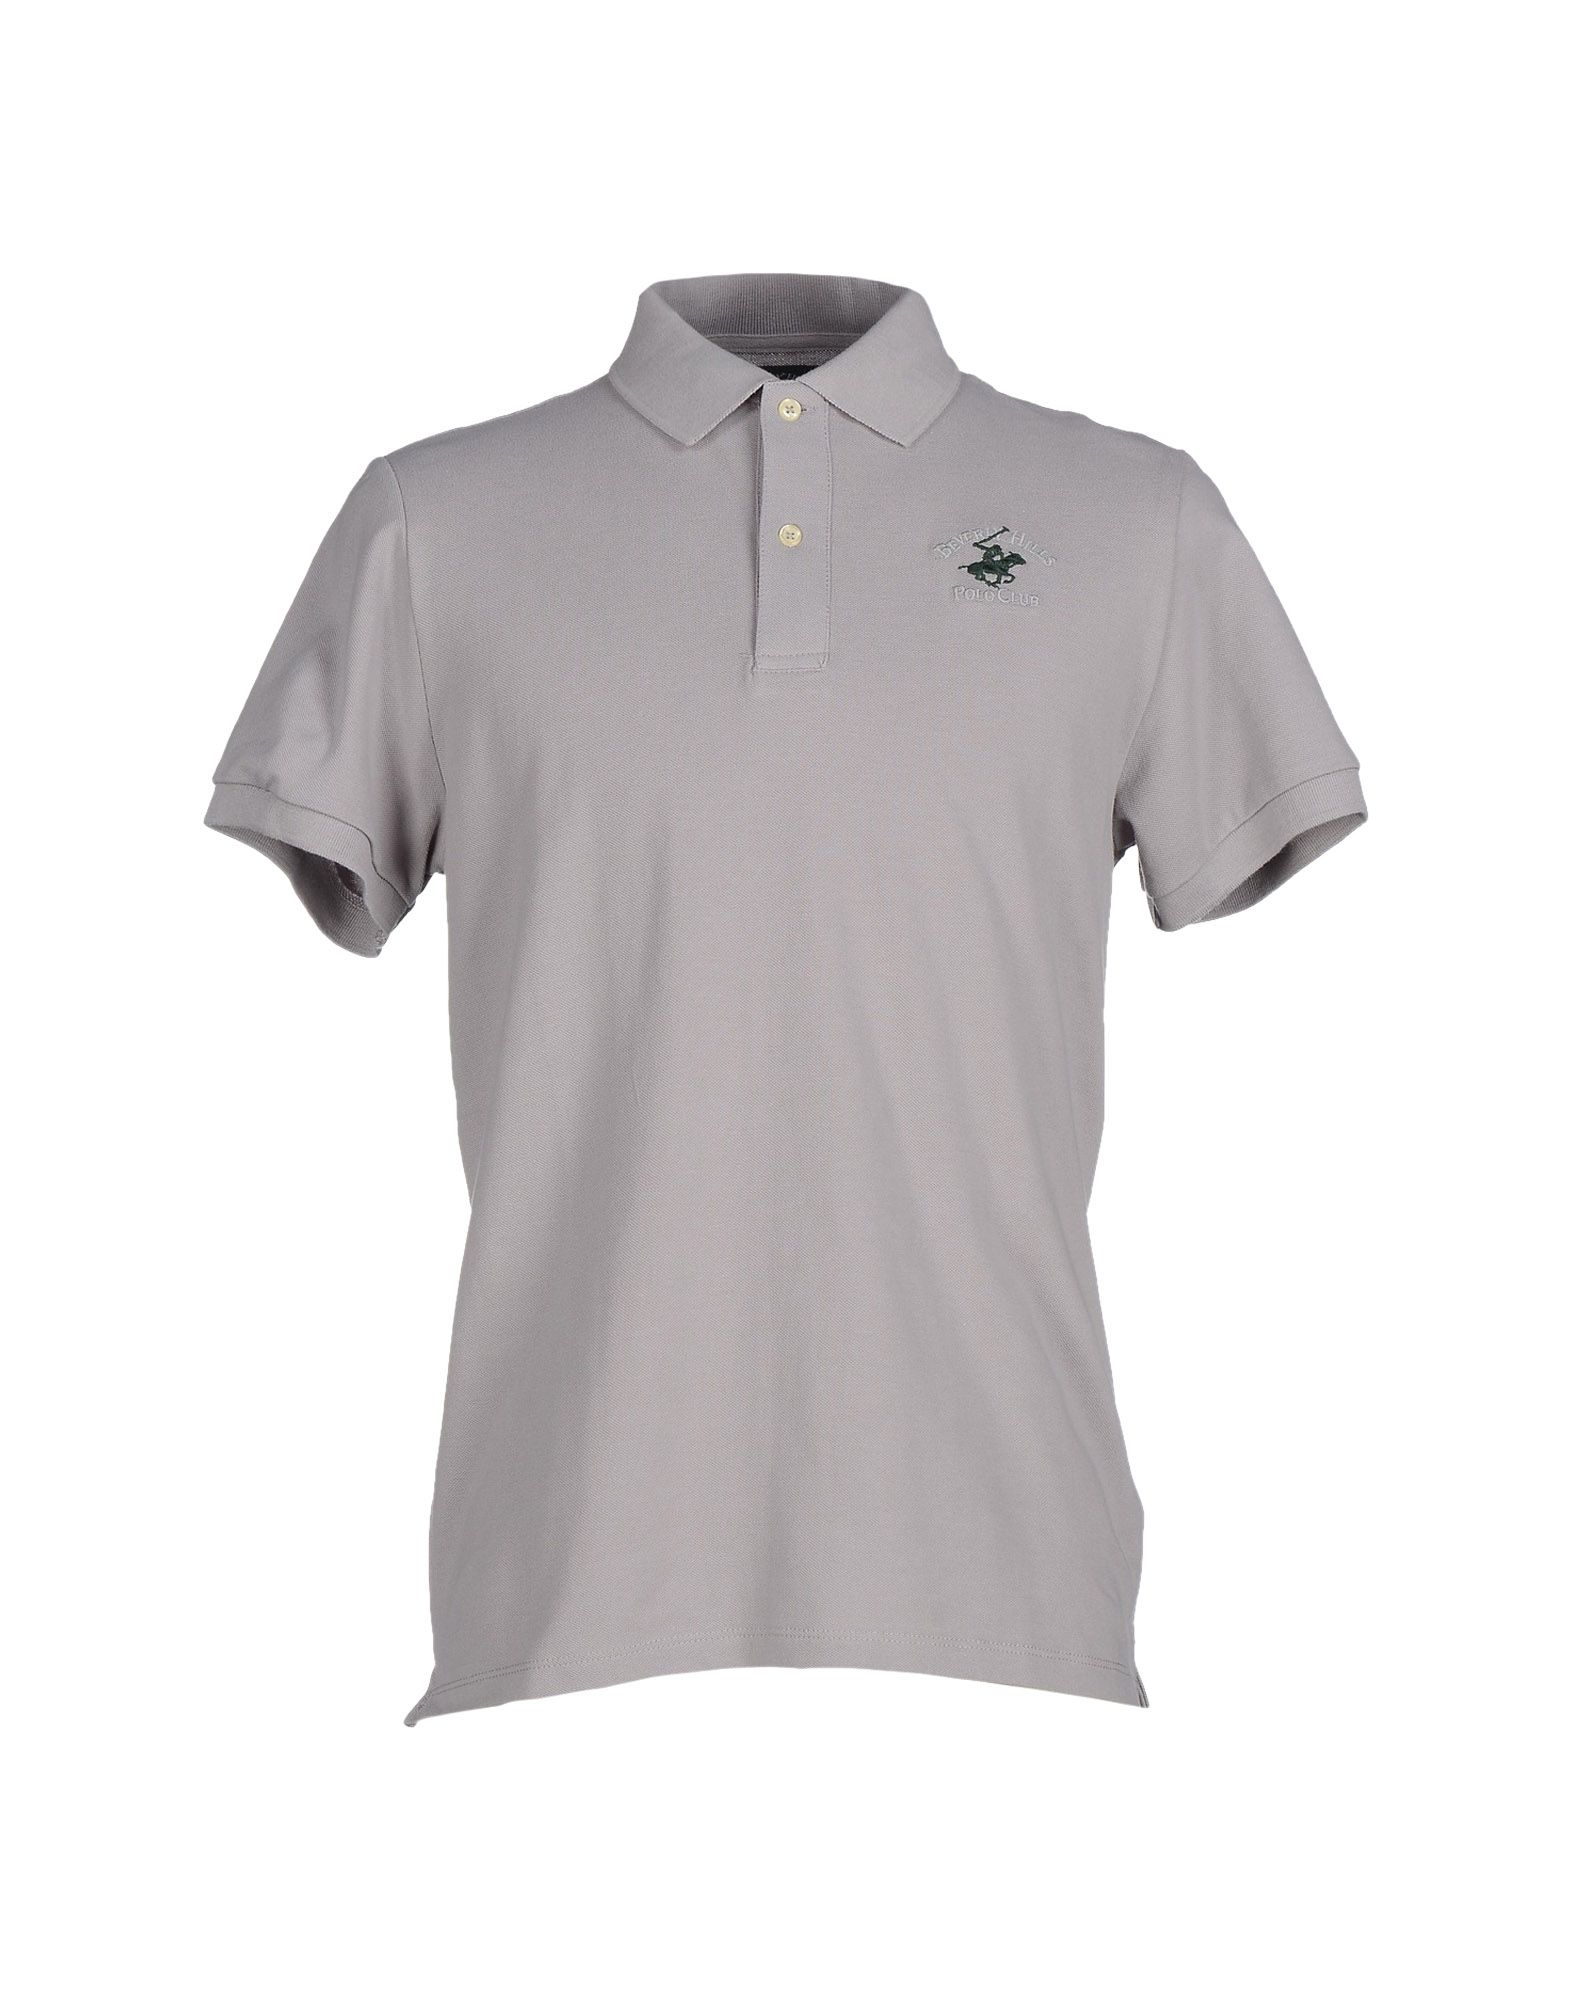 Beverly Hills Polo Club Polo Shirt In Gray For Men Light